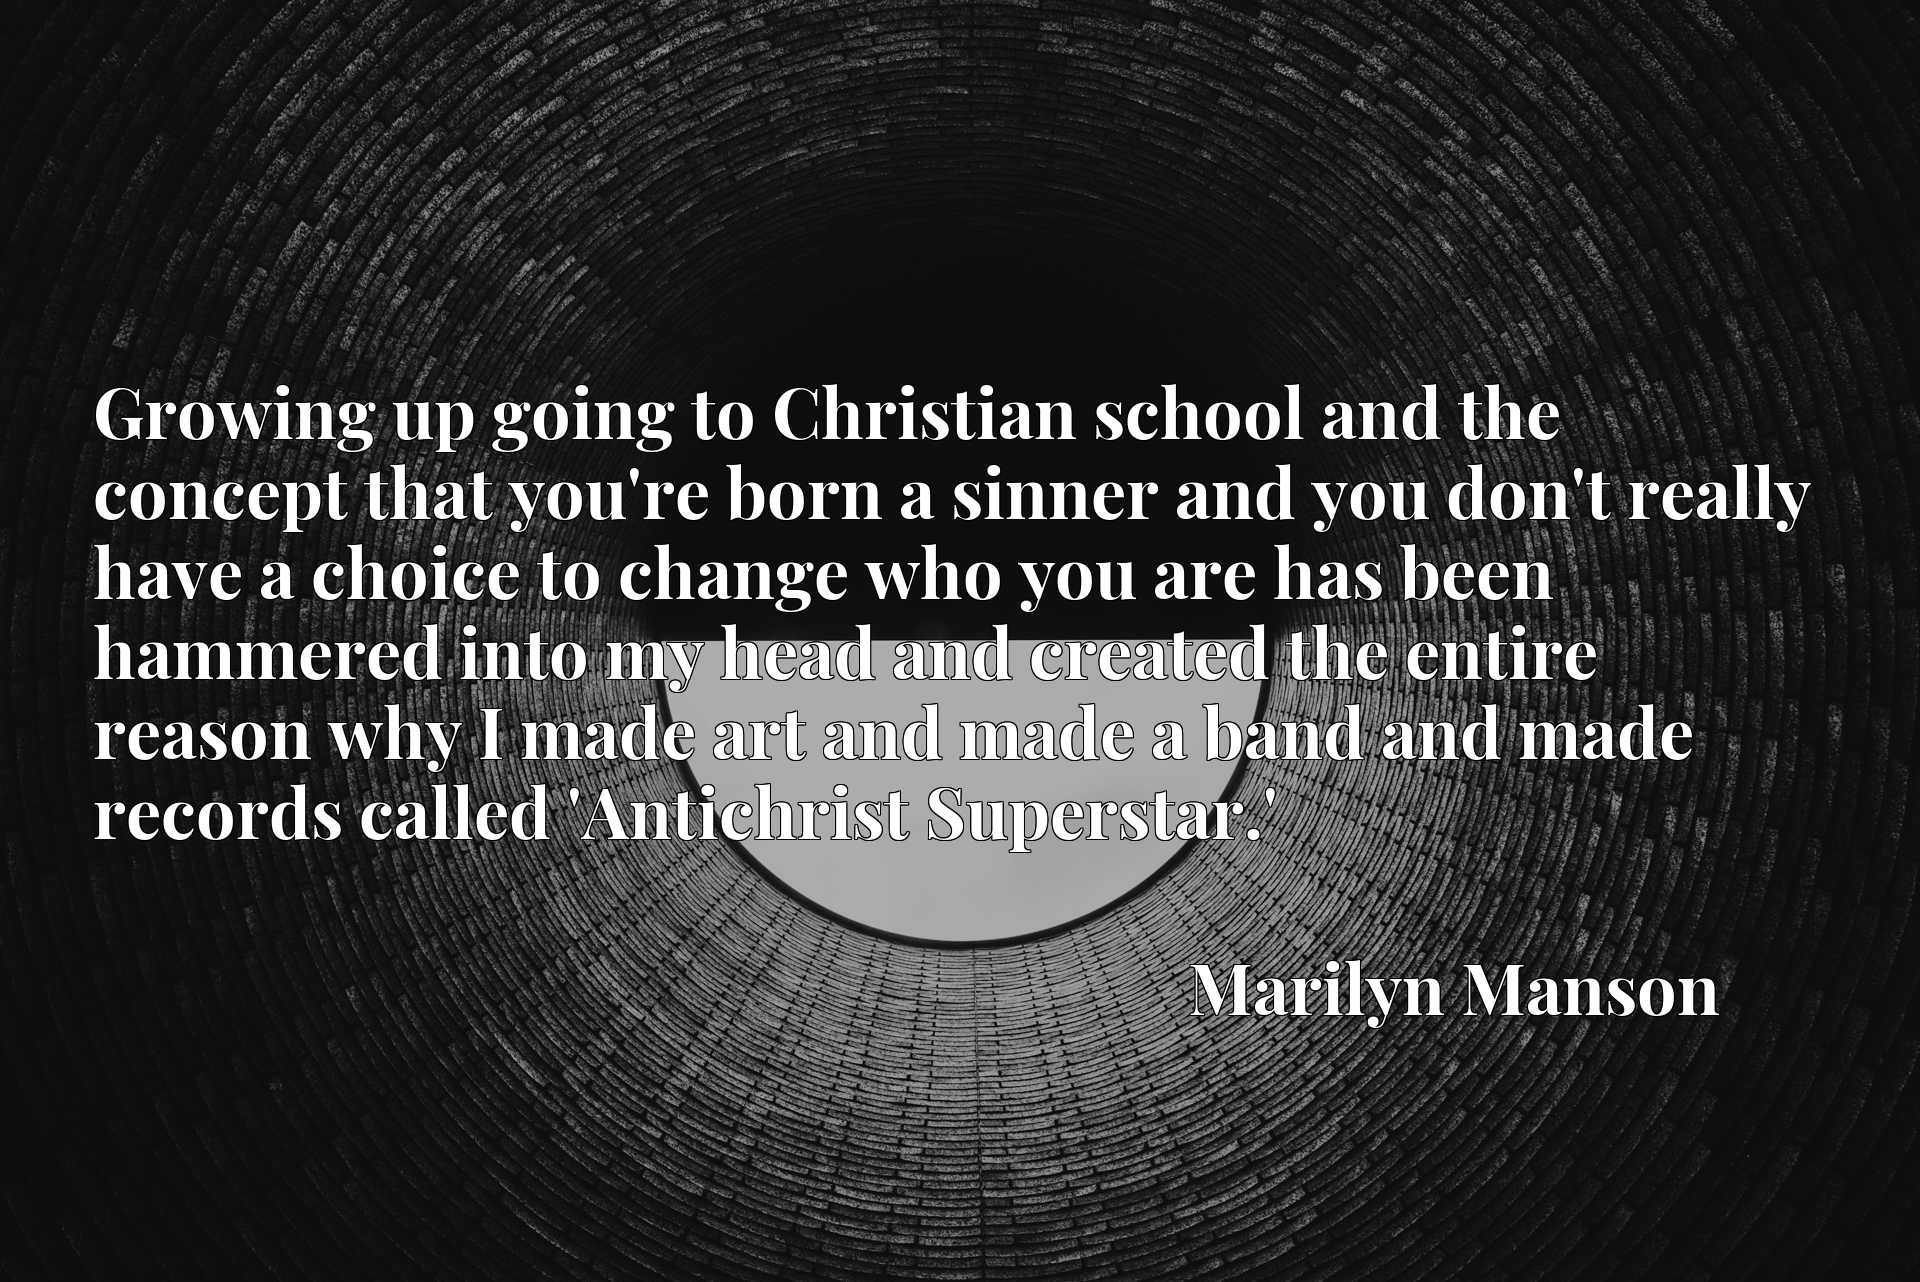 Growing up going to Christian school and the concept that you're born a sinner and you don't really have a choice to change who you are has been hammered into my head and created the entire reason why I made art and made a band and made records called 'Antichrist Superstar.'